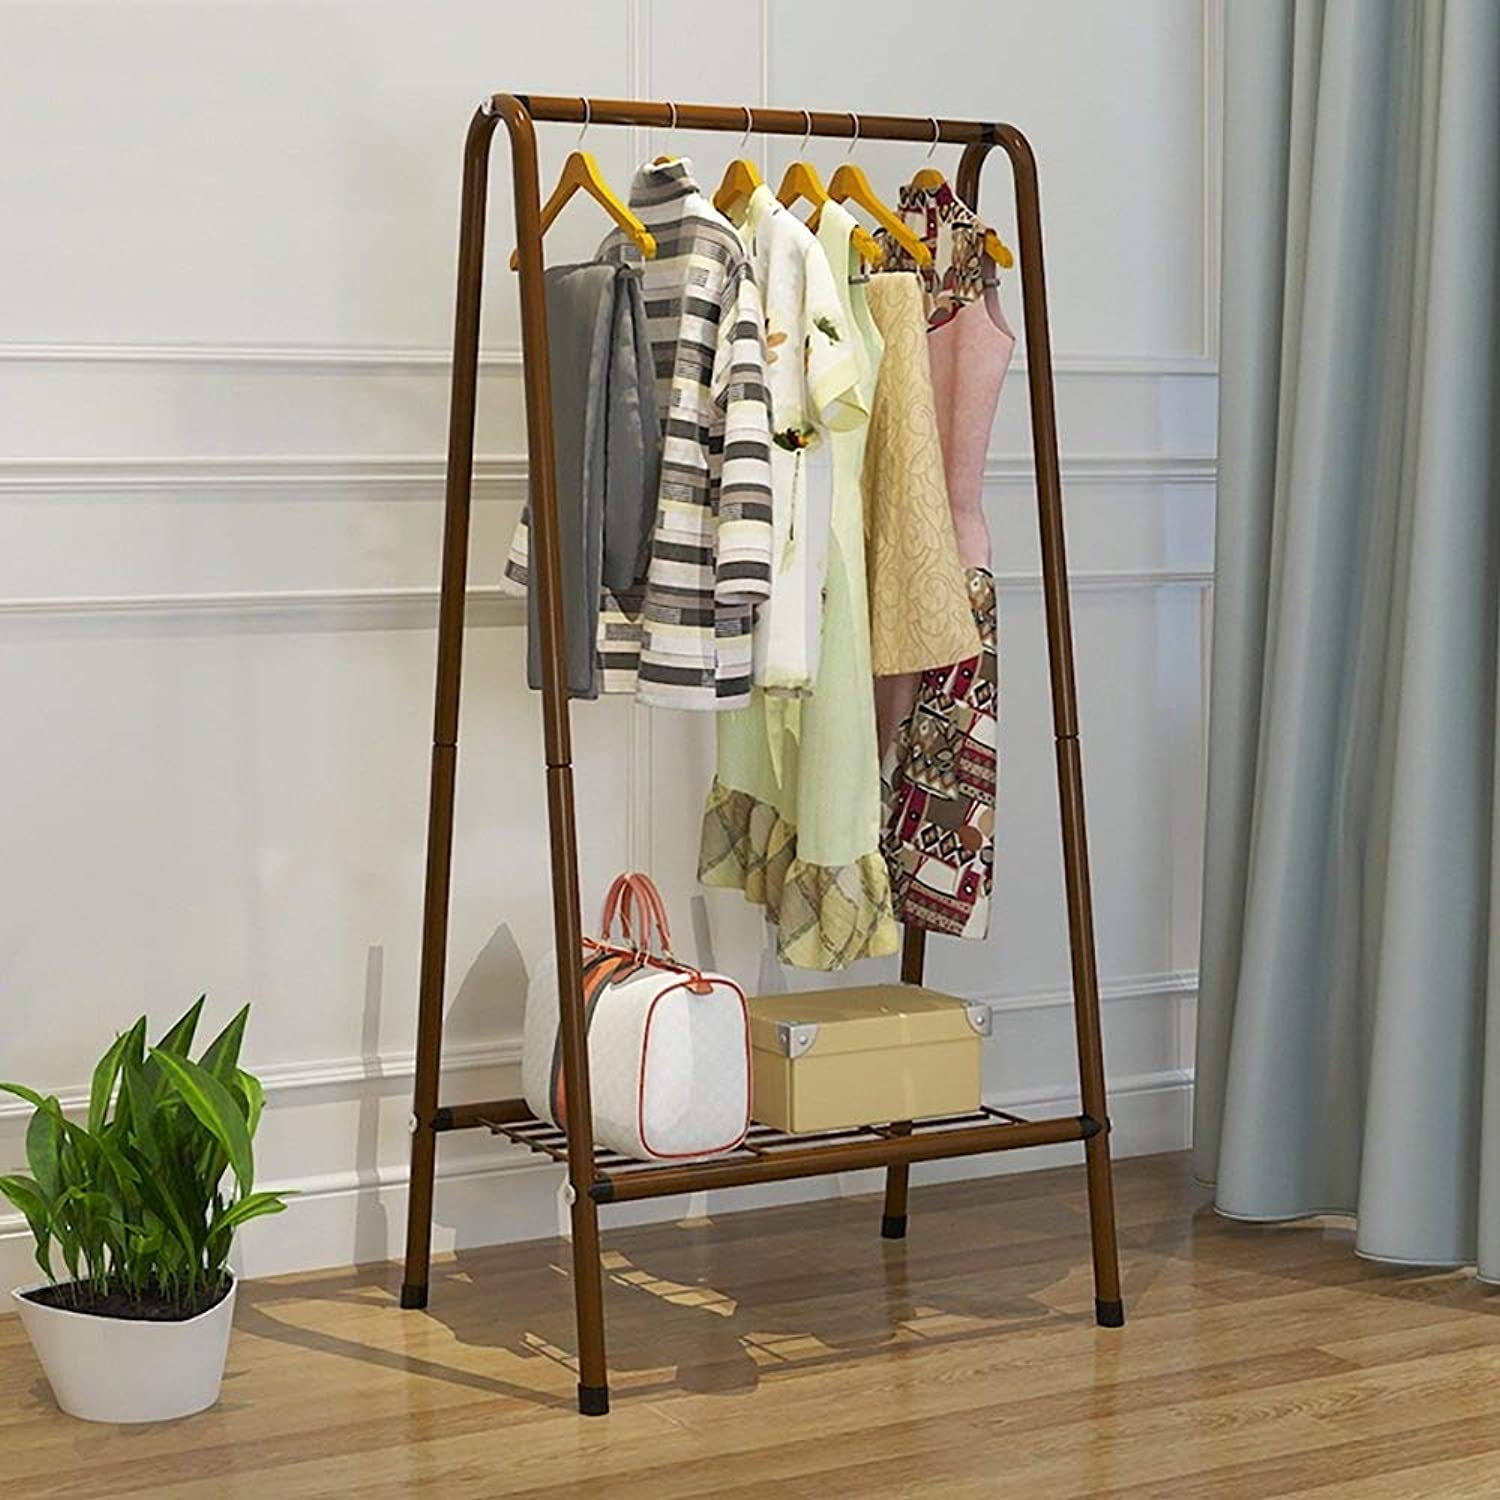 Coat Rack Steel Simple Frame Floorstanding Fashion Clothes Hanger 2 colors Optional Wall Hanger Brown 151cm Creative Movable Haiming (color   Brown, Size   151cm)